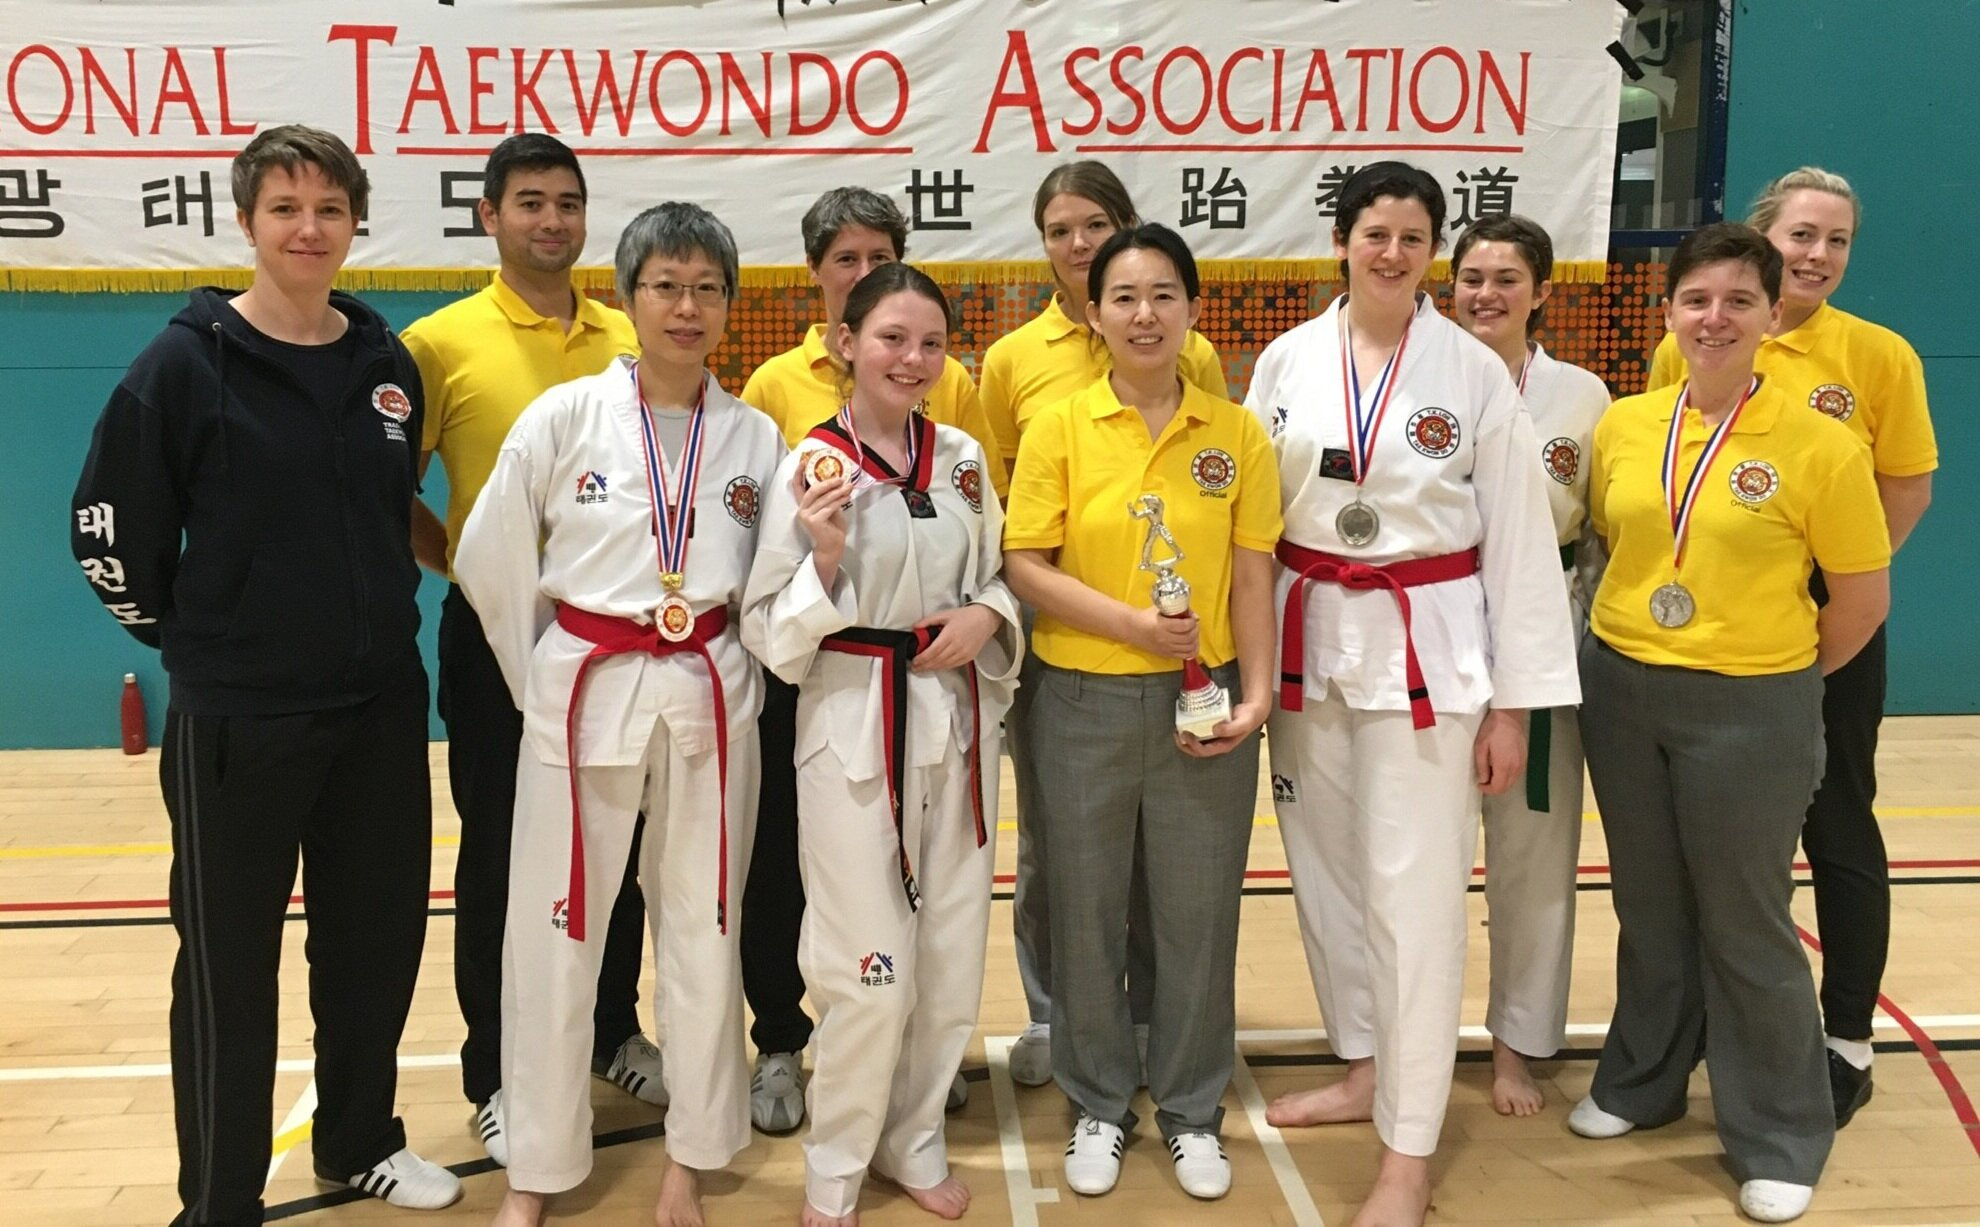 London Southwark students won 1 silver and 3 bronze medals in kyorugi.